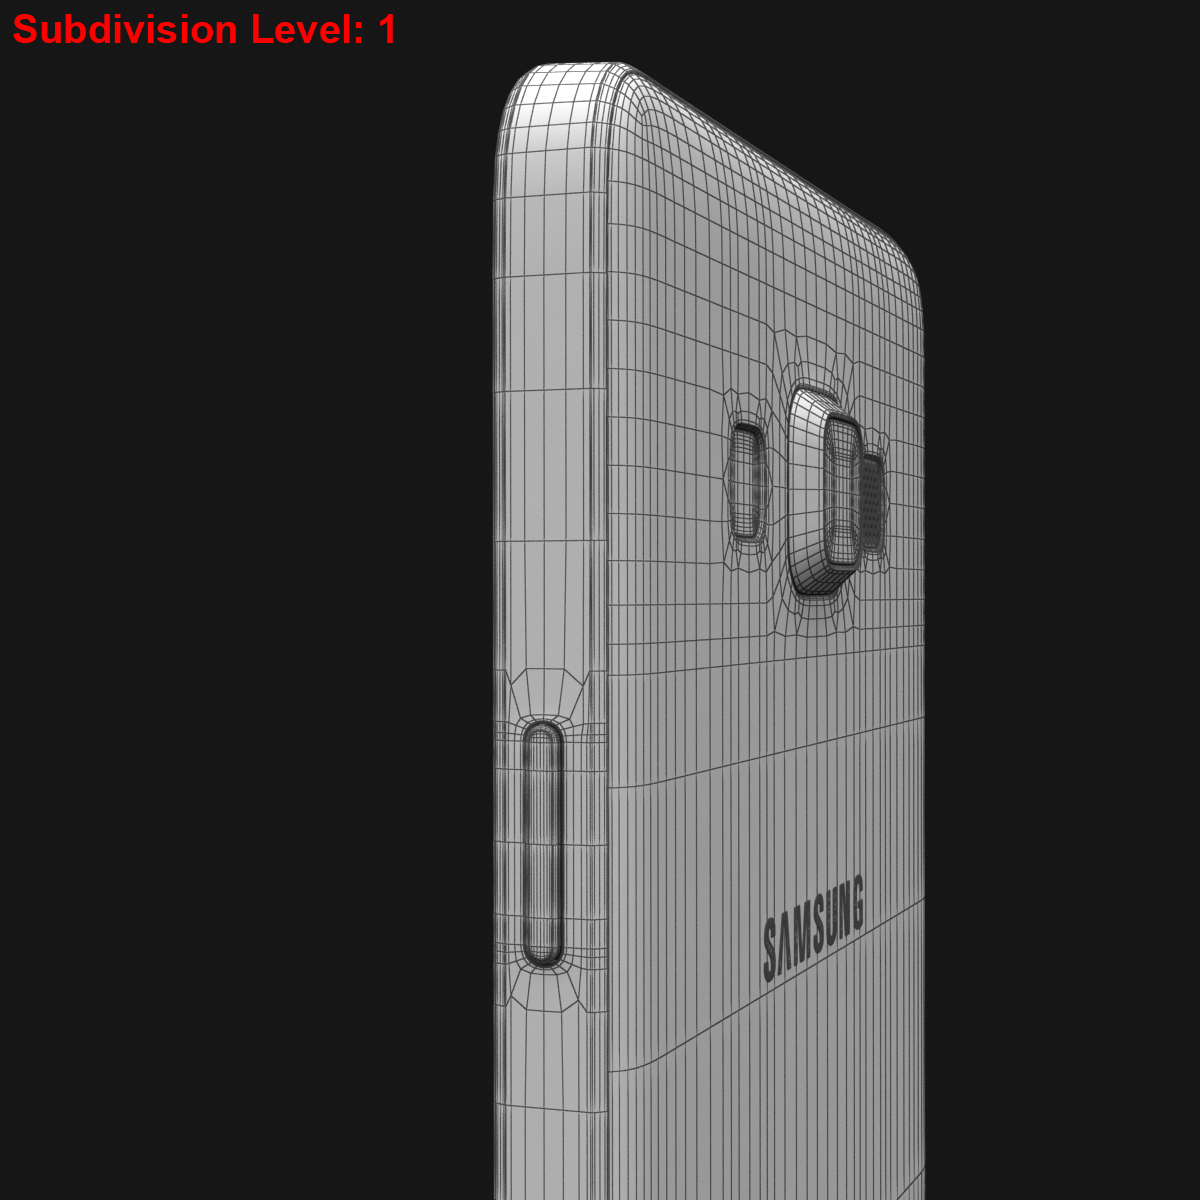 samsung galaxy a3 and a3 duos silver 3d model 3ds max fbx c4d obj 208330